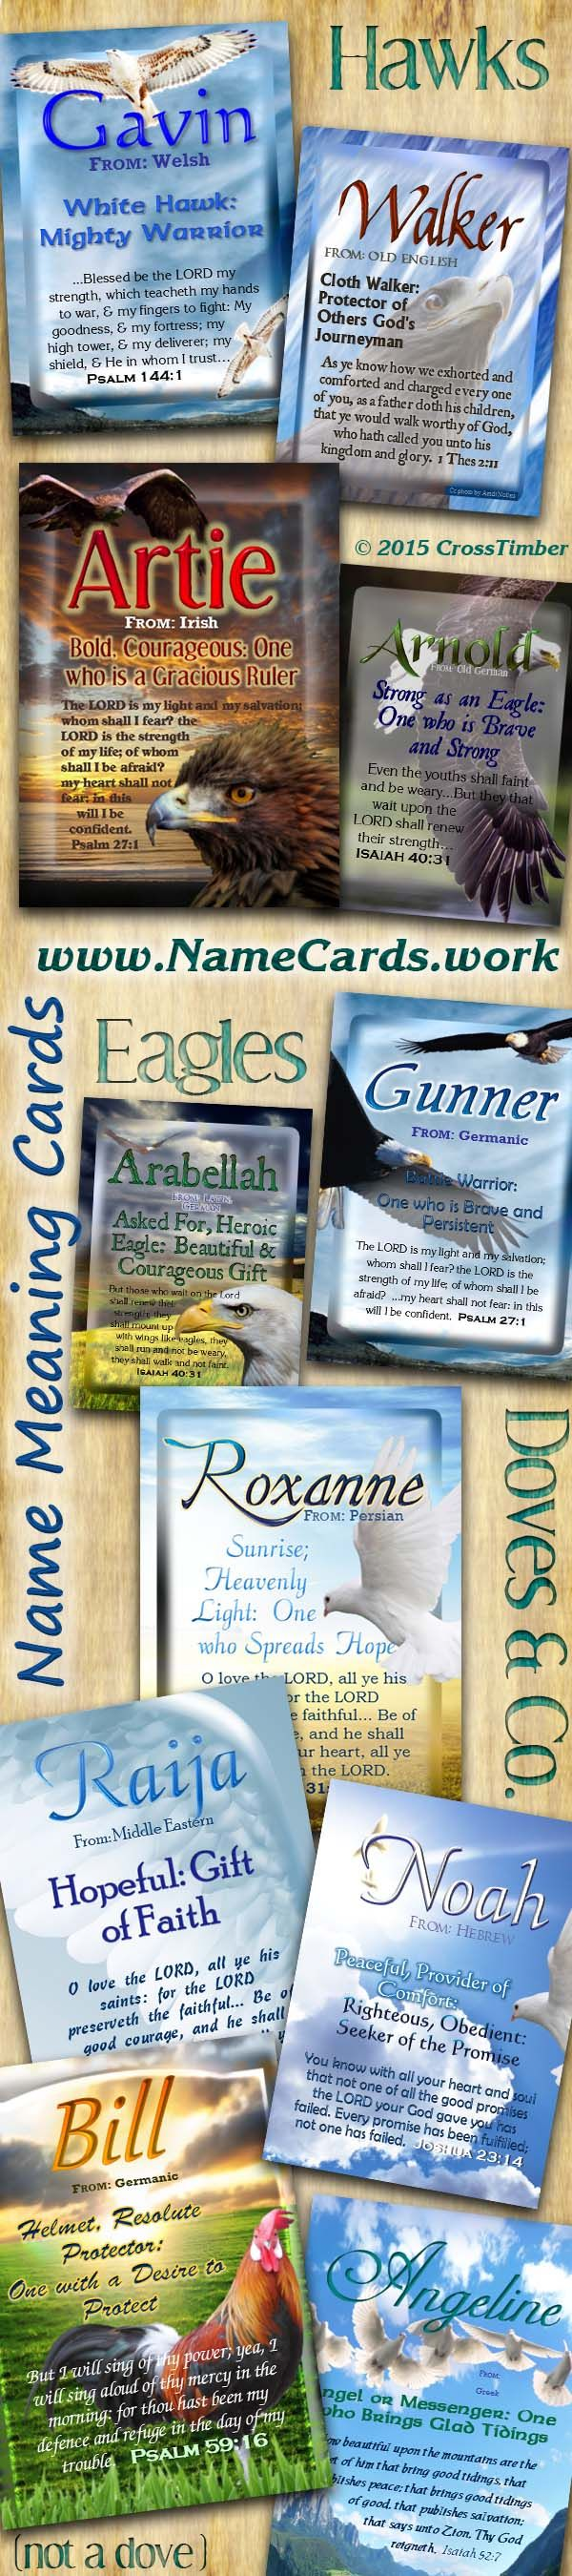 Plaques with name meanings - Name Meaning Cards With Eagles Doves Hawks And A Rooster Come Personalize For